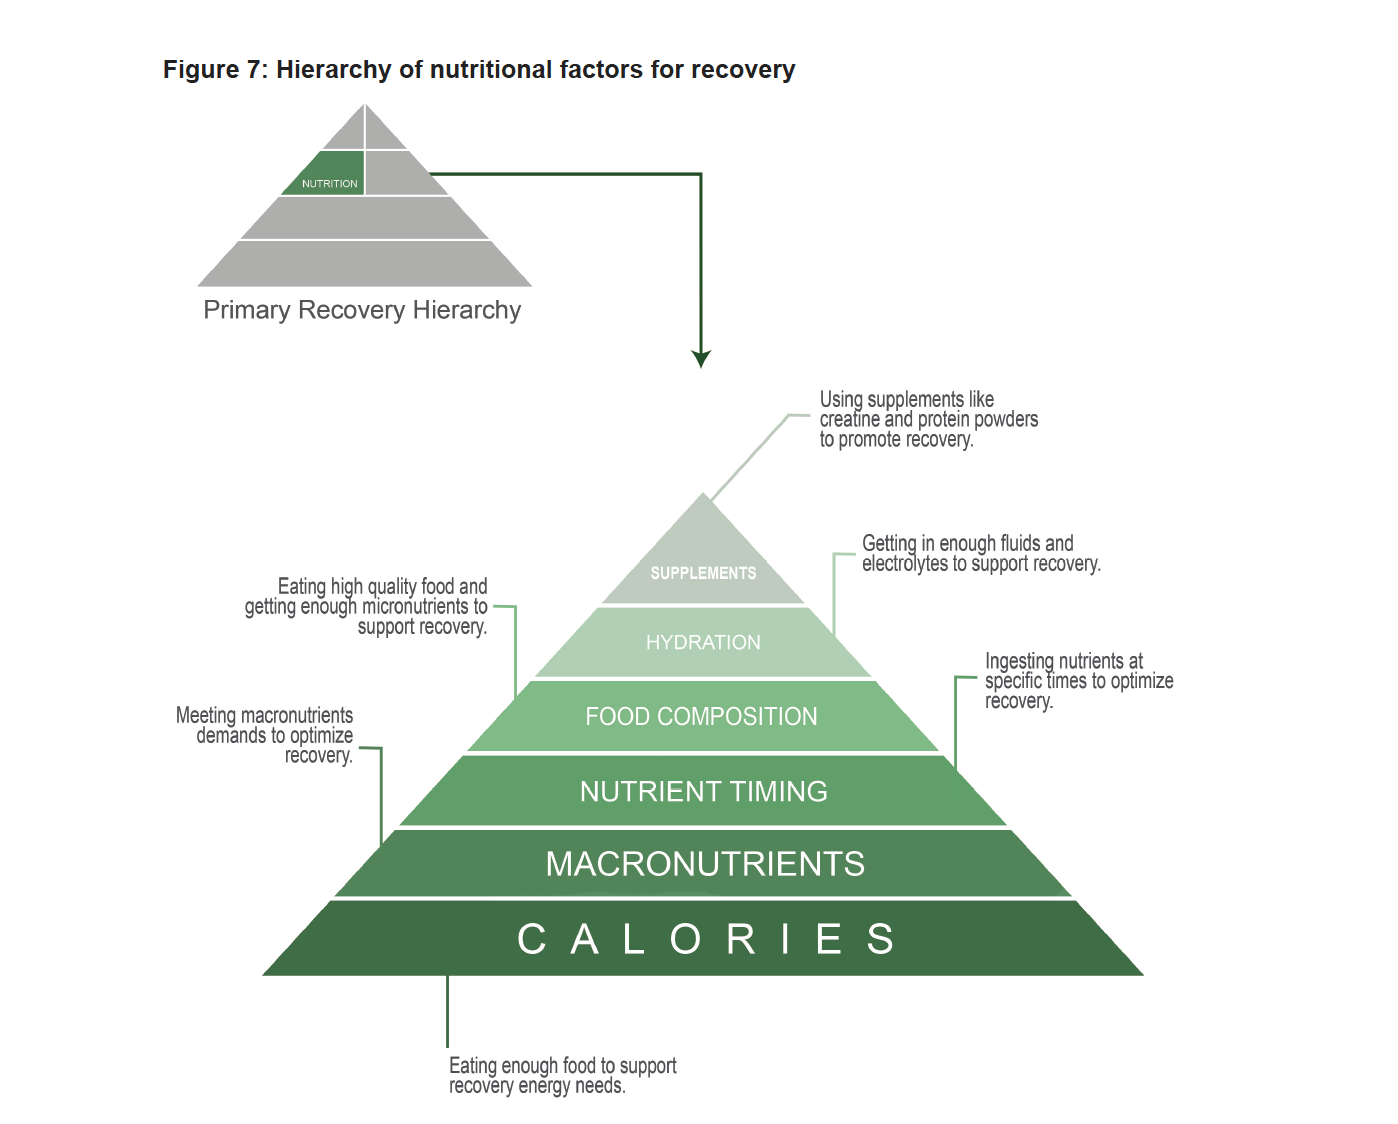 Hierarchy of Nutritional Factors of Recovery